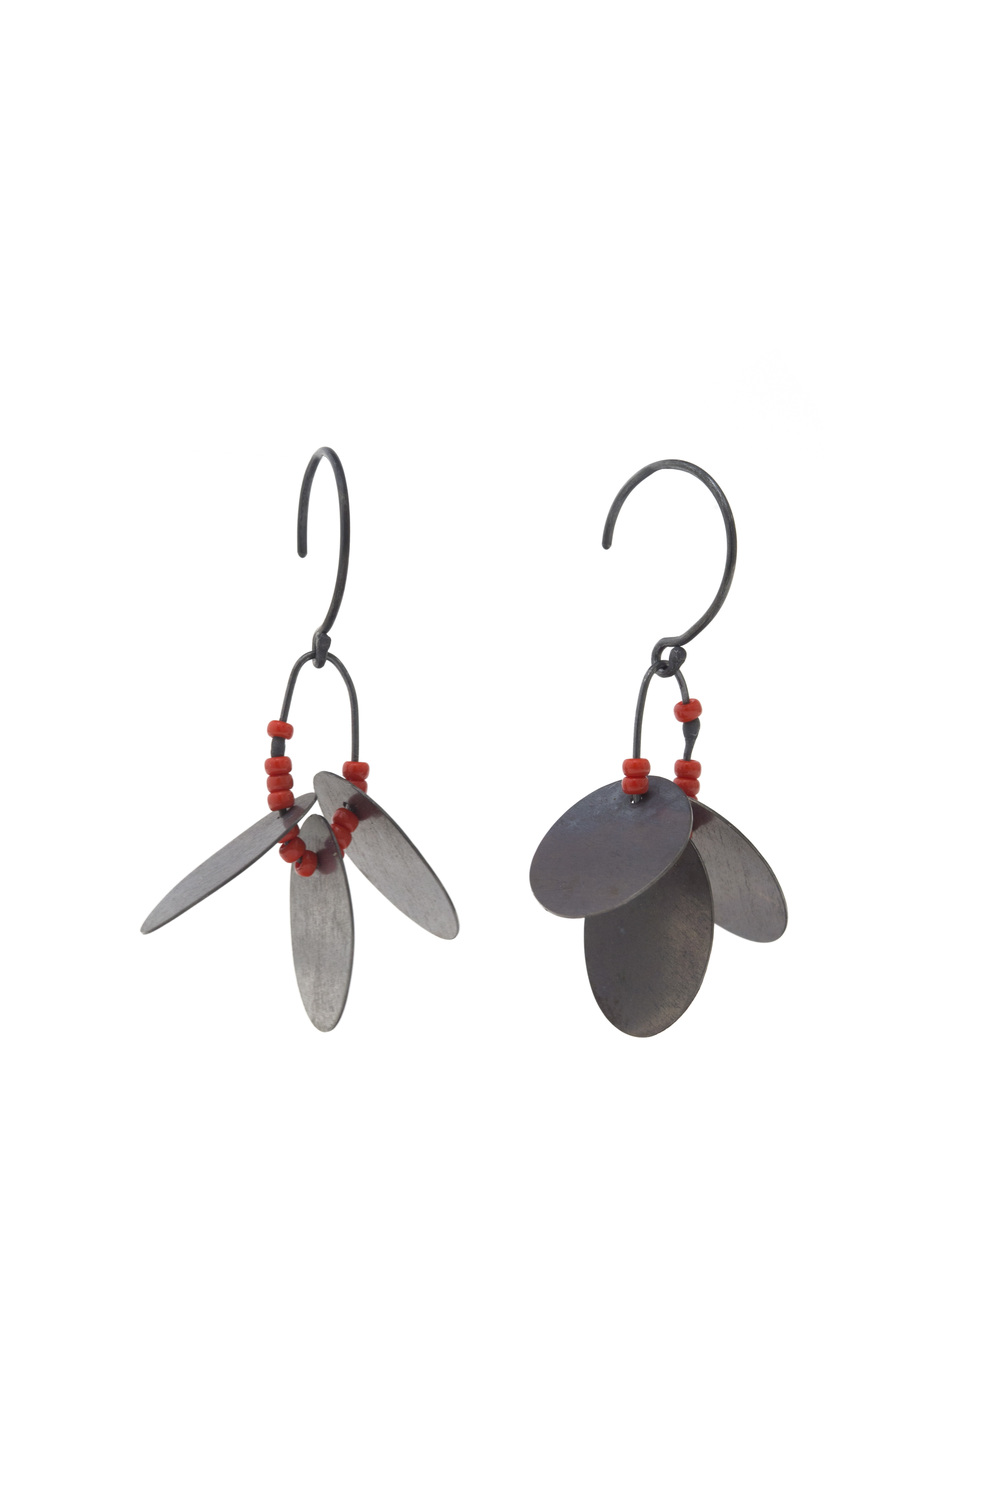 EE14 Bump, Raissa (2511) oxidized sterling silver discs with red glass beads.jpg